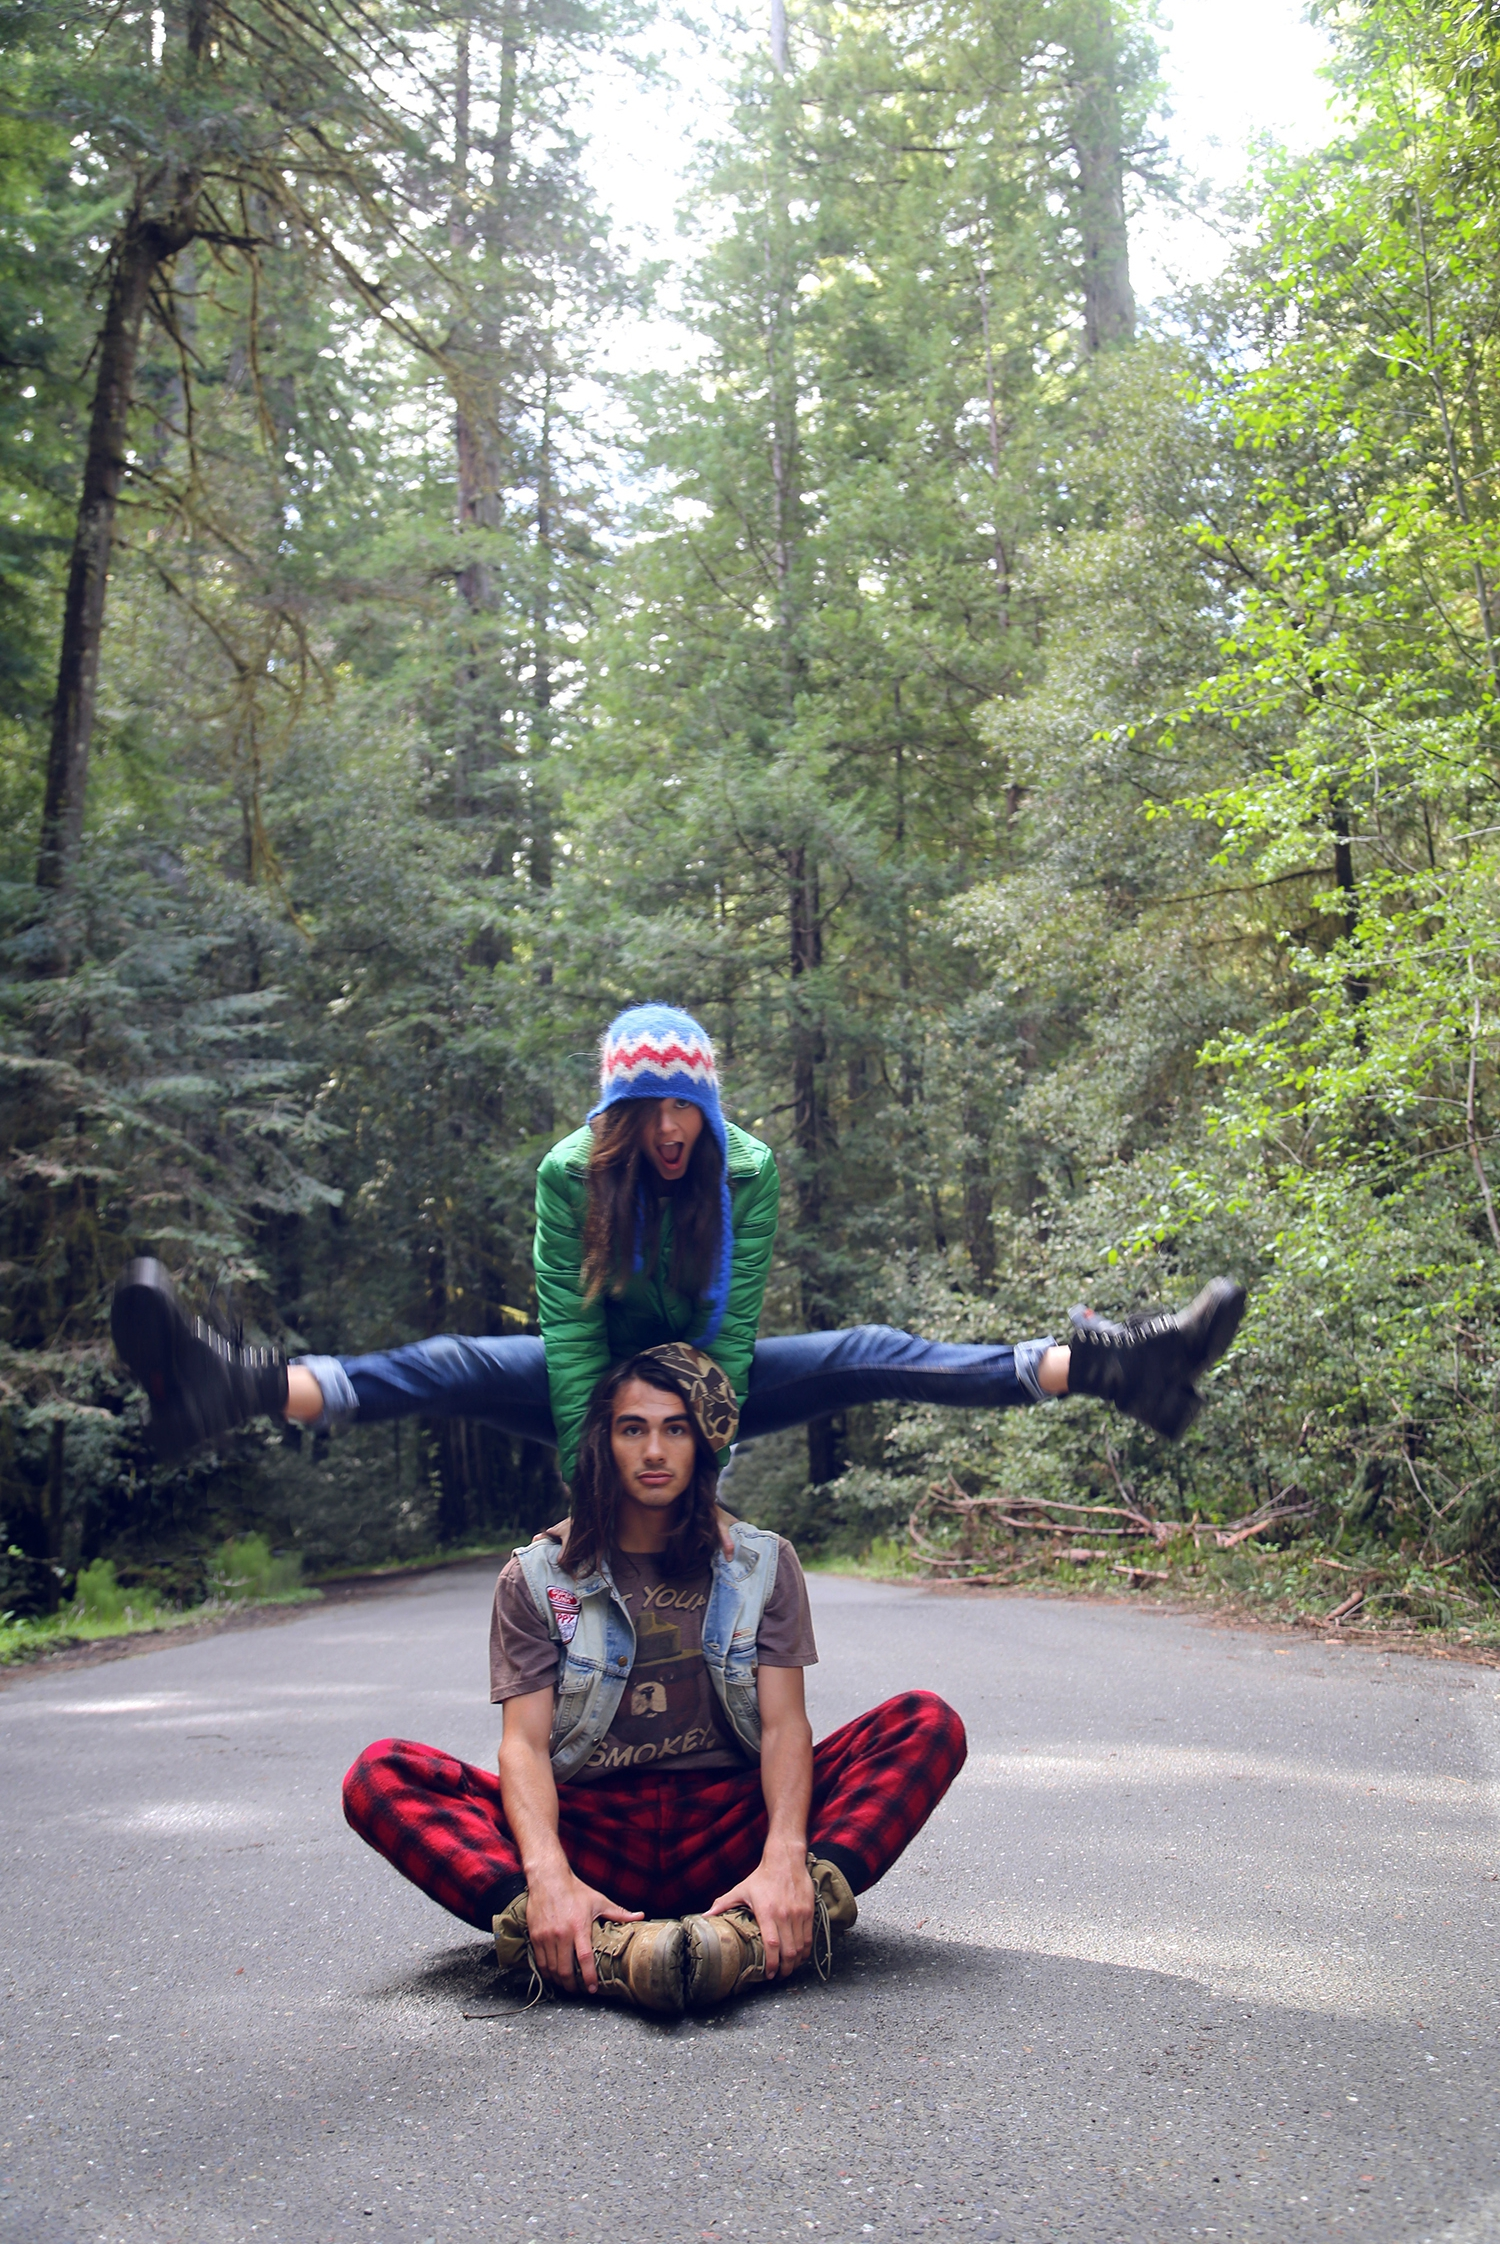 road trip, glamping, redwoods, california, heather van gaale, amber flowers, fashion blog,in the moment, candid, freedom, millennial, avenue of the giants, road shot, hip couple